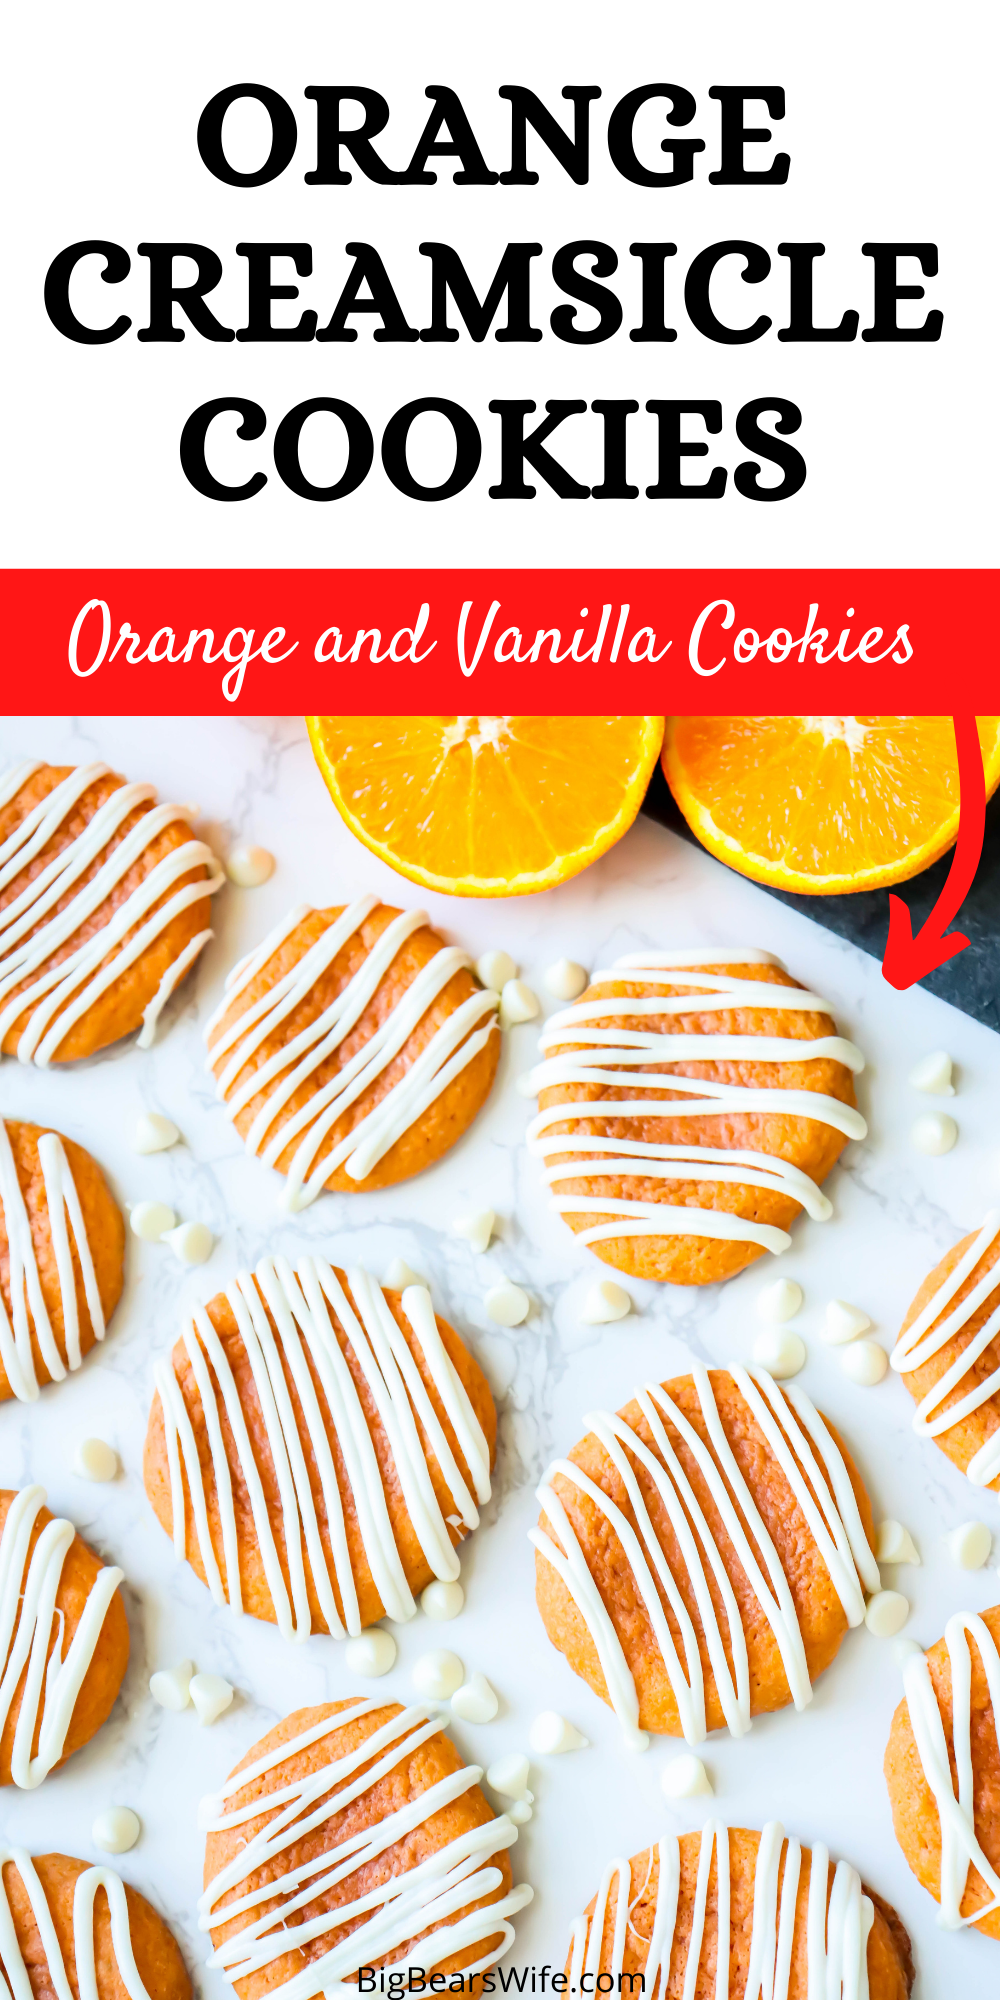 These Orange Creamsicle Cookies are the perfect combination of vanilla and orange! They're soft, smell just like Orange Creamsicle ice cream and are topped with a white chocolate drizzle! via @bigbearswife